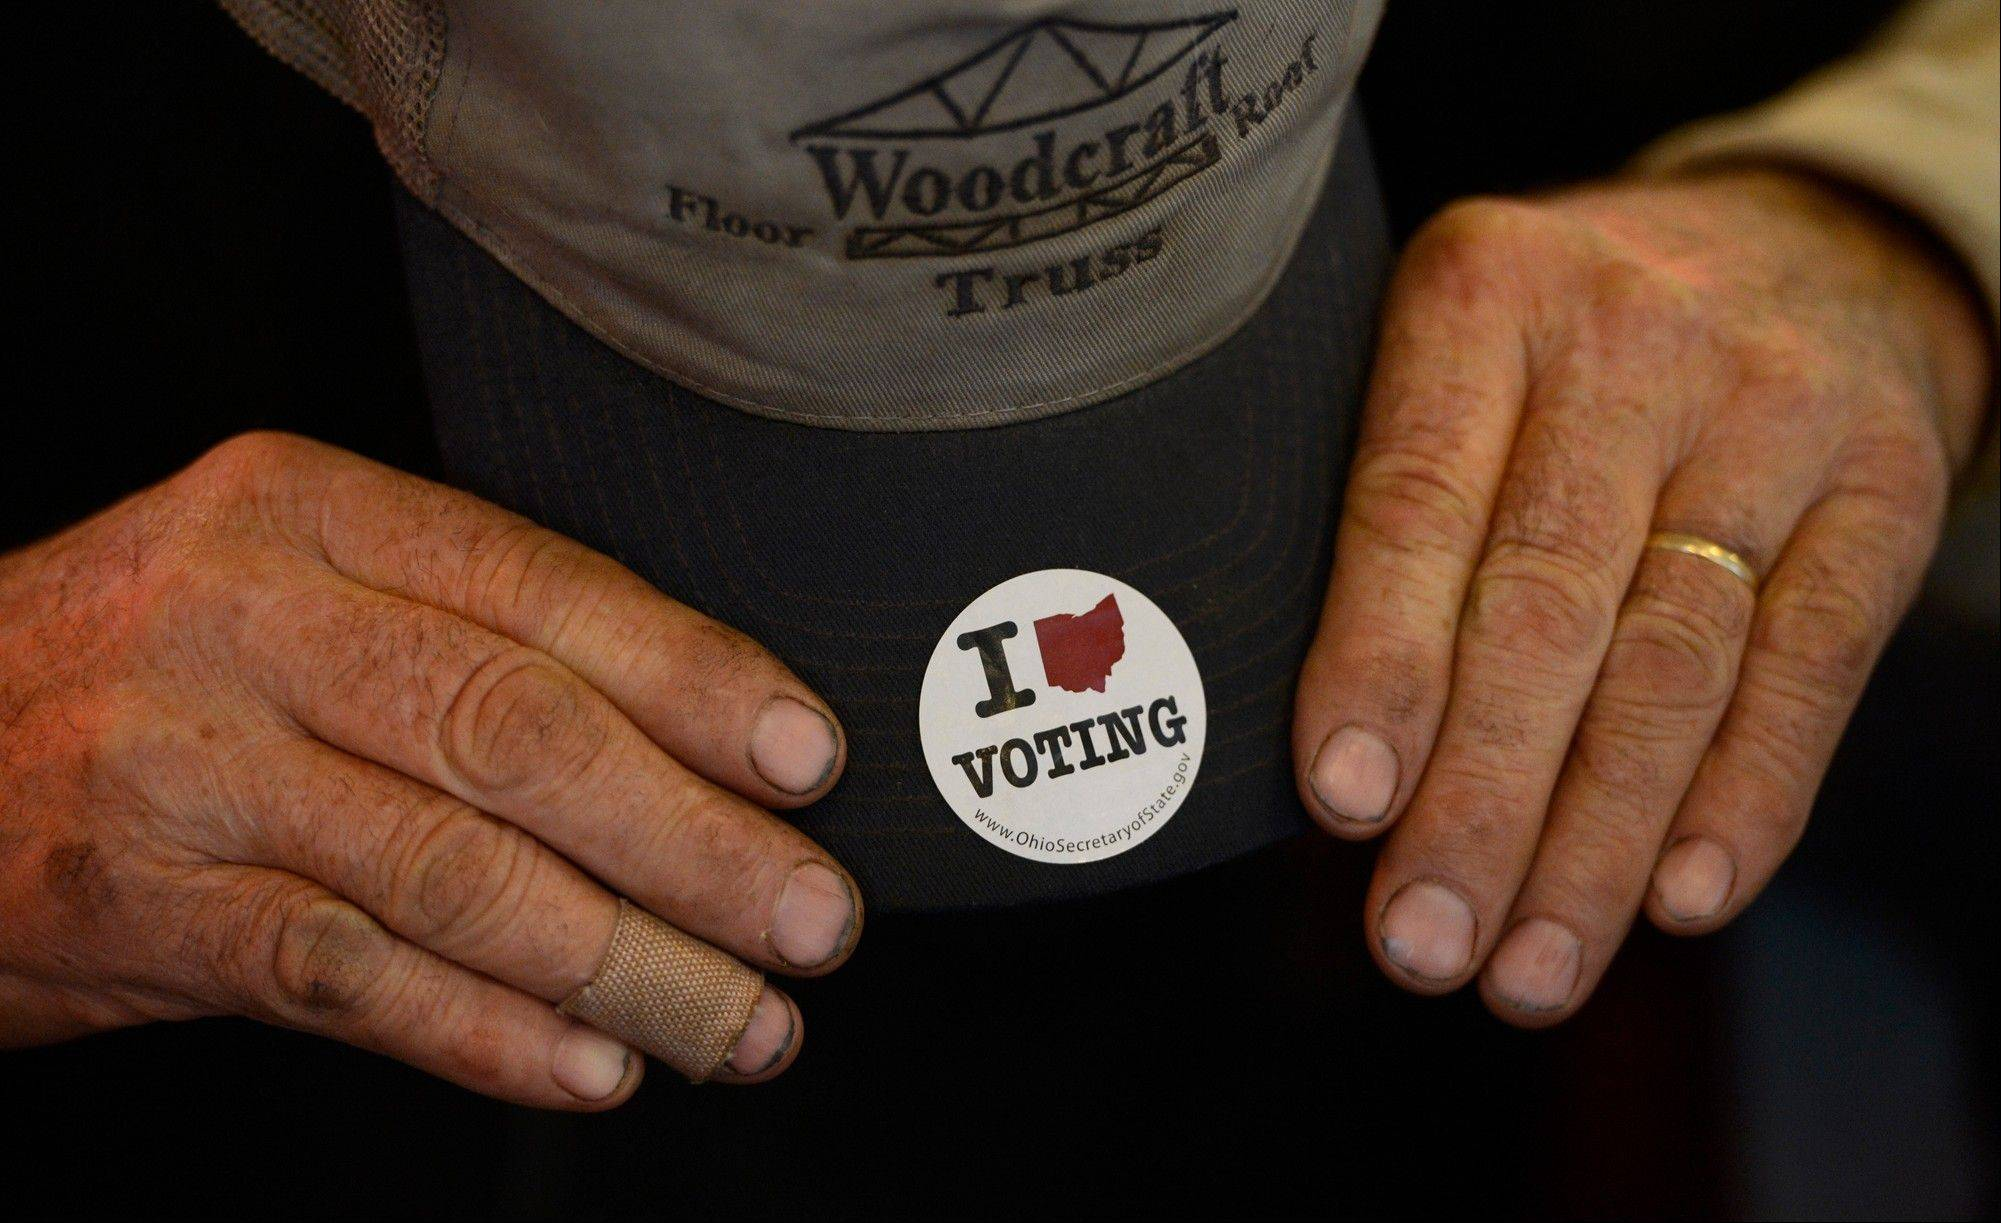 The hands of Sam Martin are seen with a sticker he received after voting early last week, as he gathers with others on Election Day for breakfast in the Nutcracker Restaurant, a 50s style diner, Tuesday, Nov. 6, 2012, in Pataskala, Ohio.